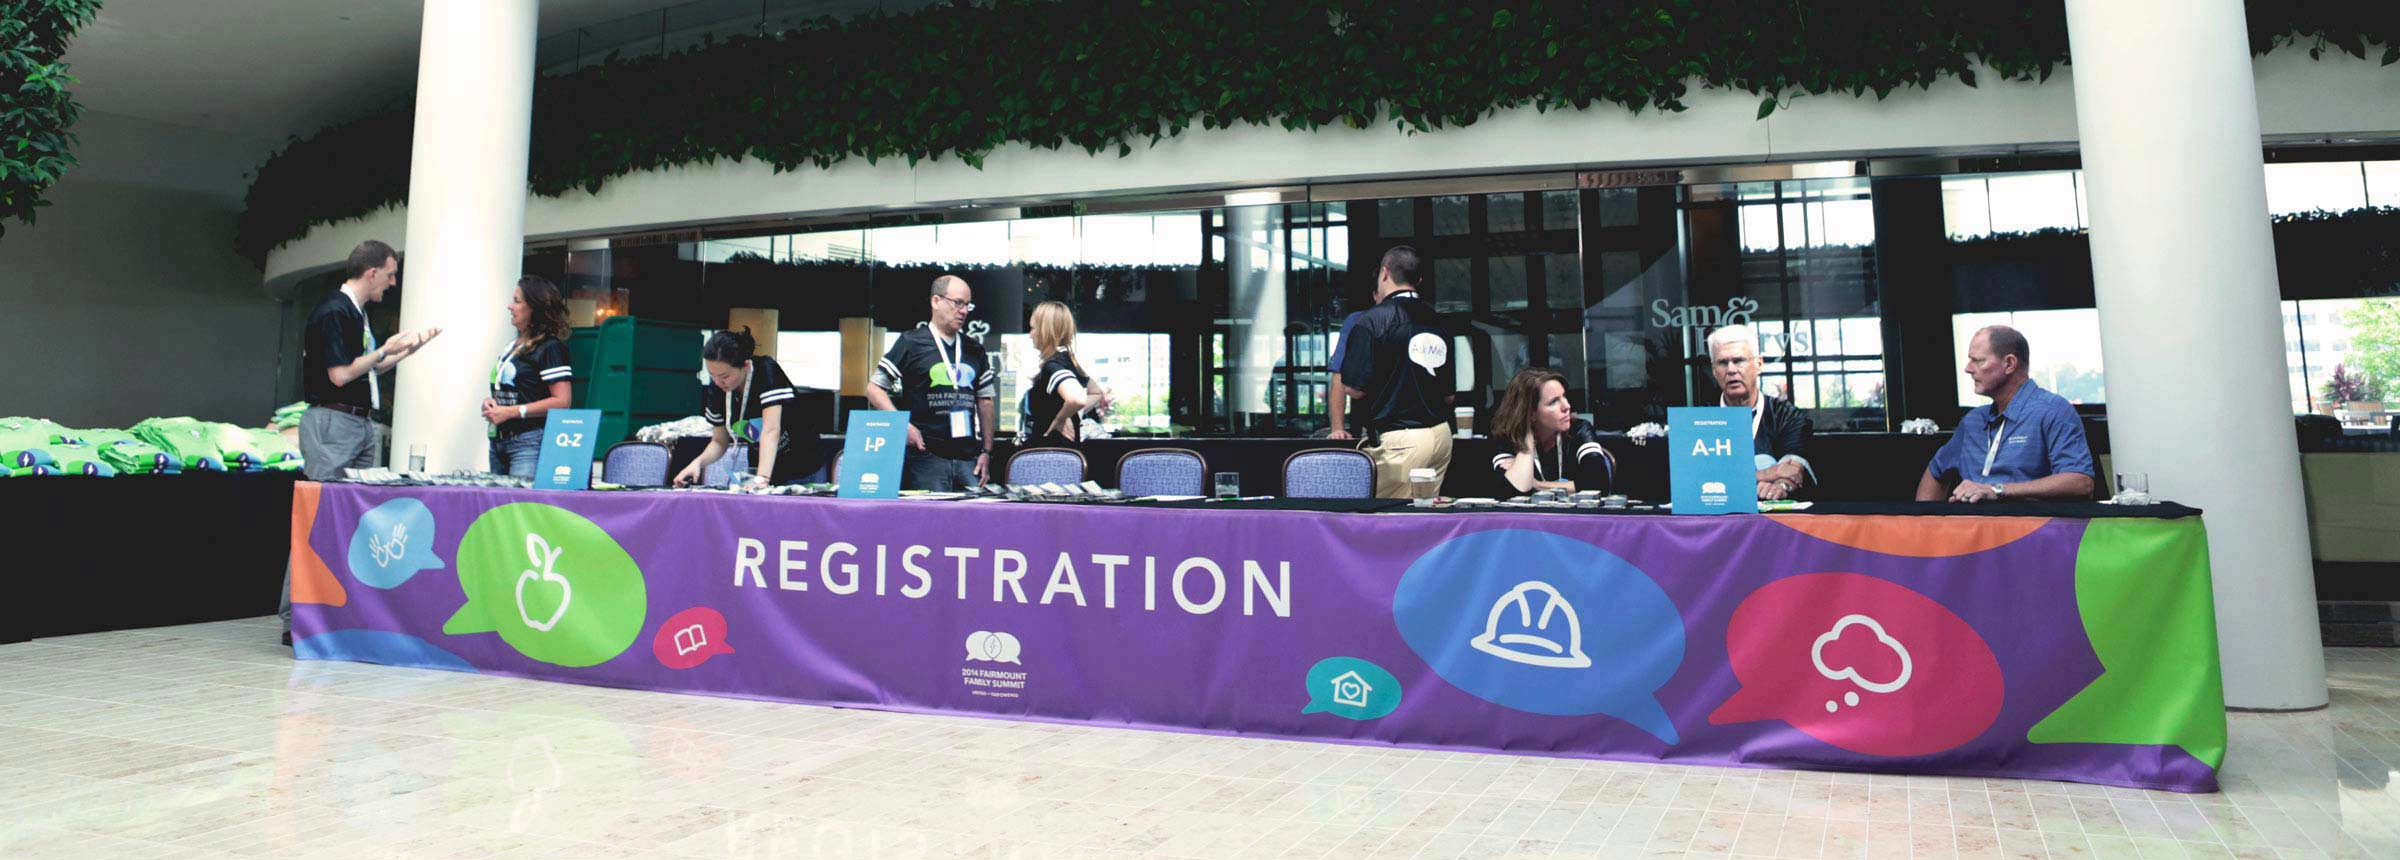 Fairmount Family Summit Registration by Blue Flame Thinking